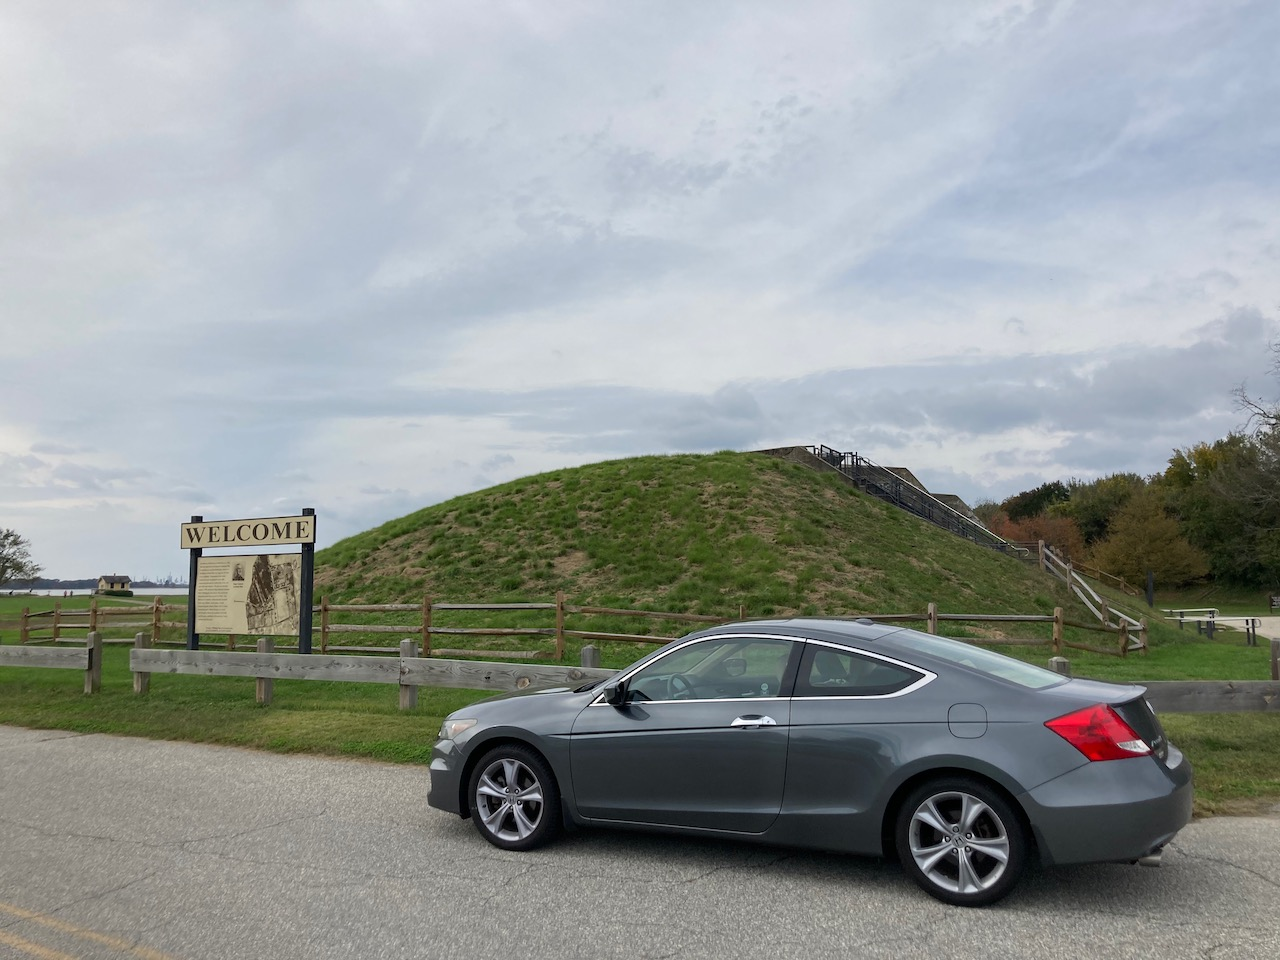 2012 Honda Accord parked in front of an earthenwork fort, with WELCOME sign in background.